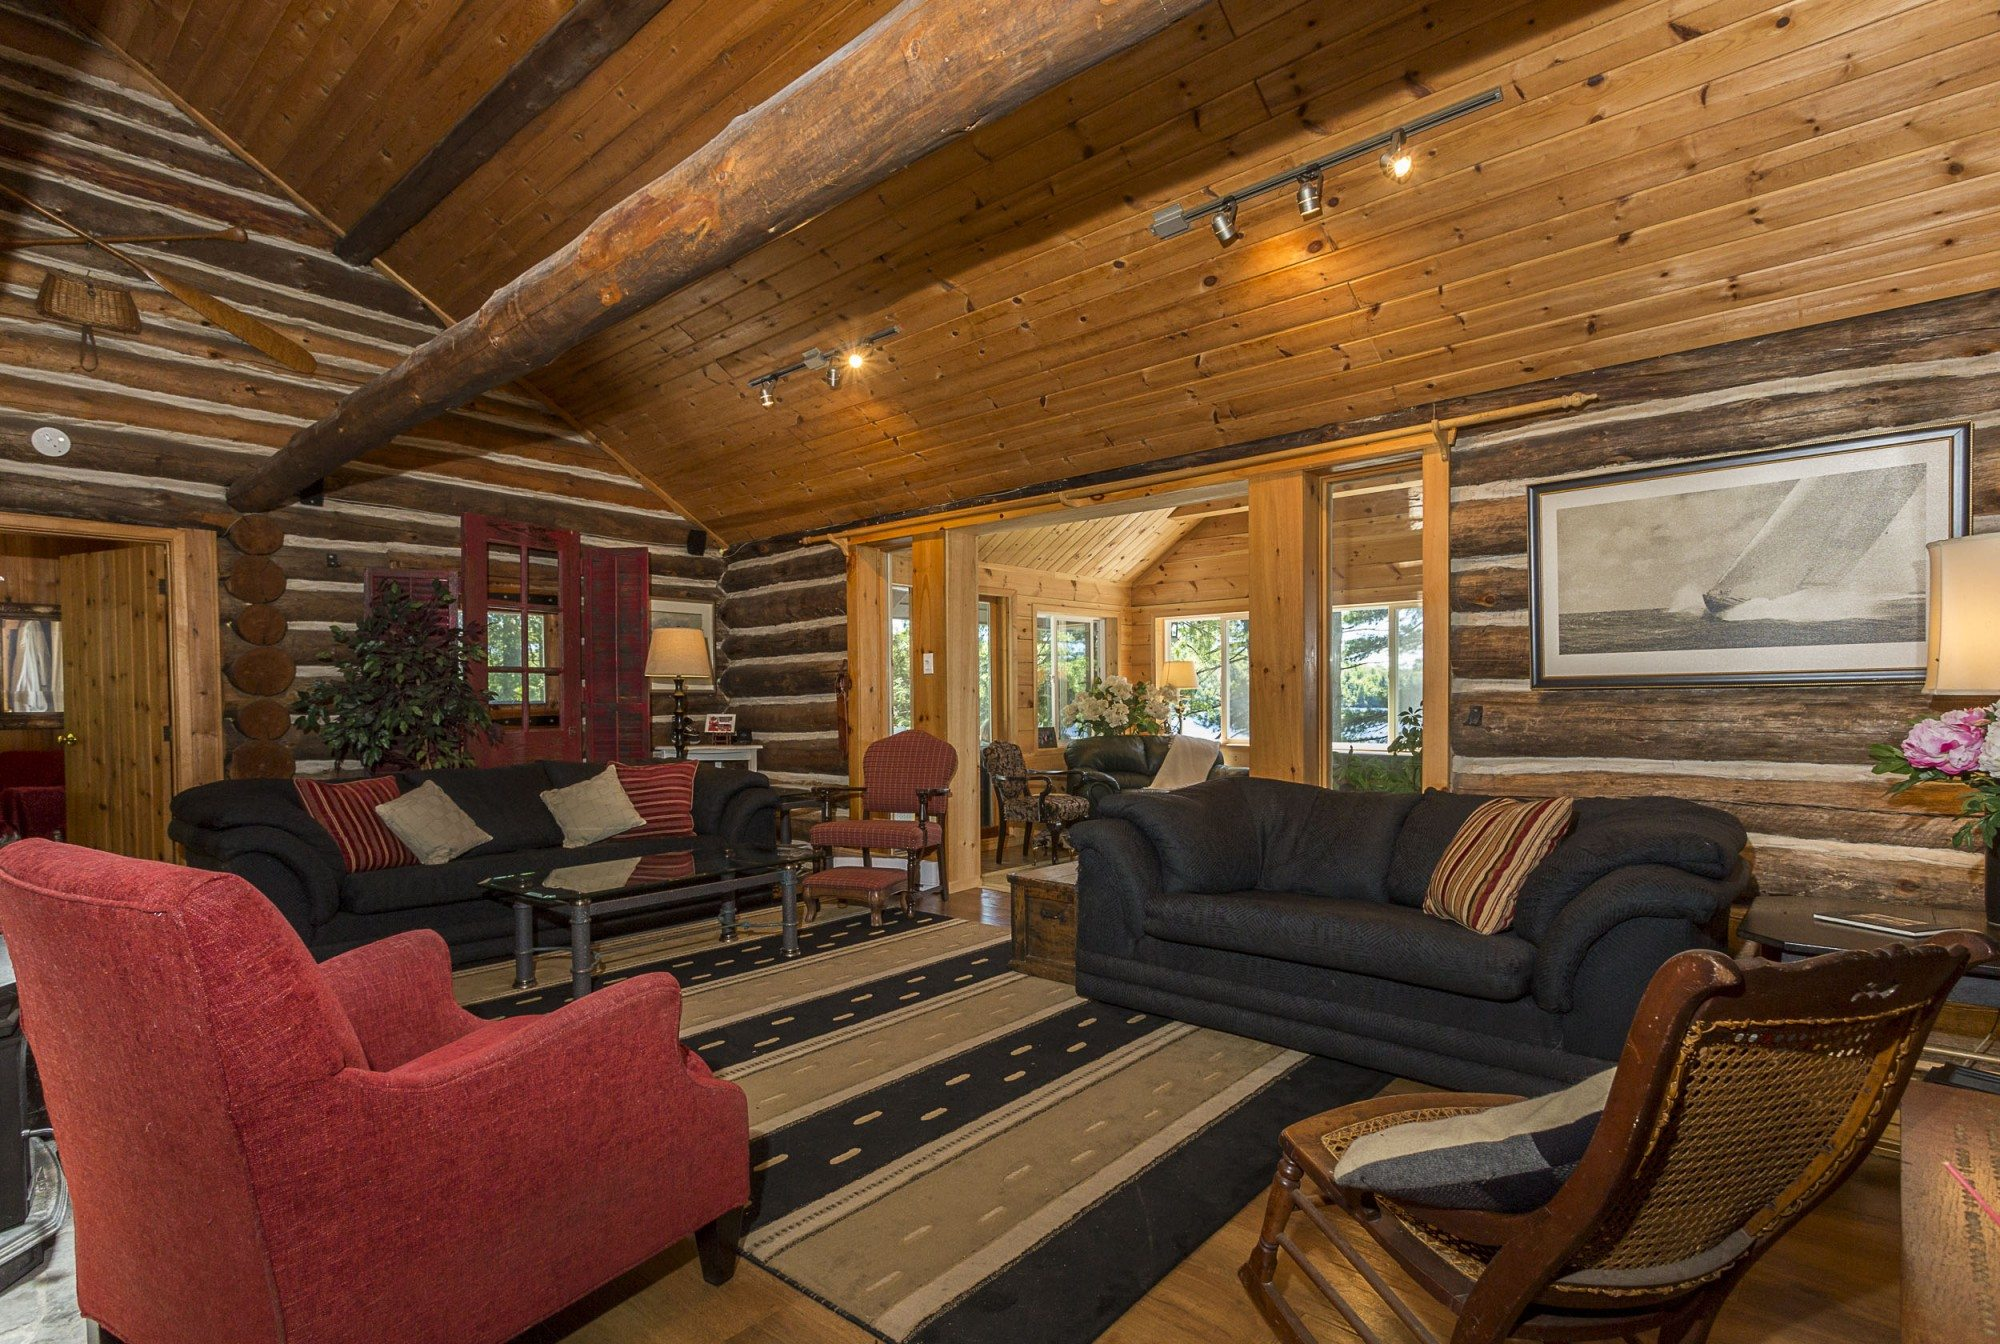 lake-of-bays-cottage-of-the-week-1057-montgomery-bay-road.3